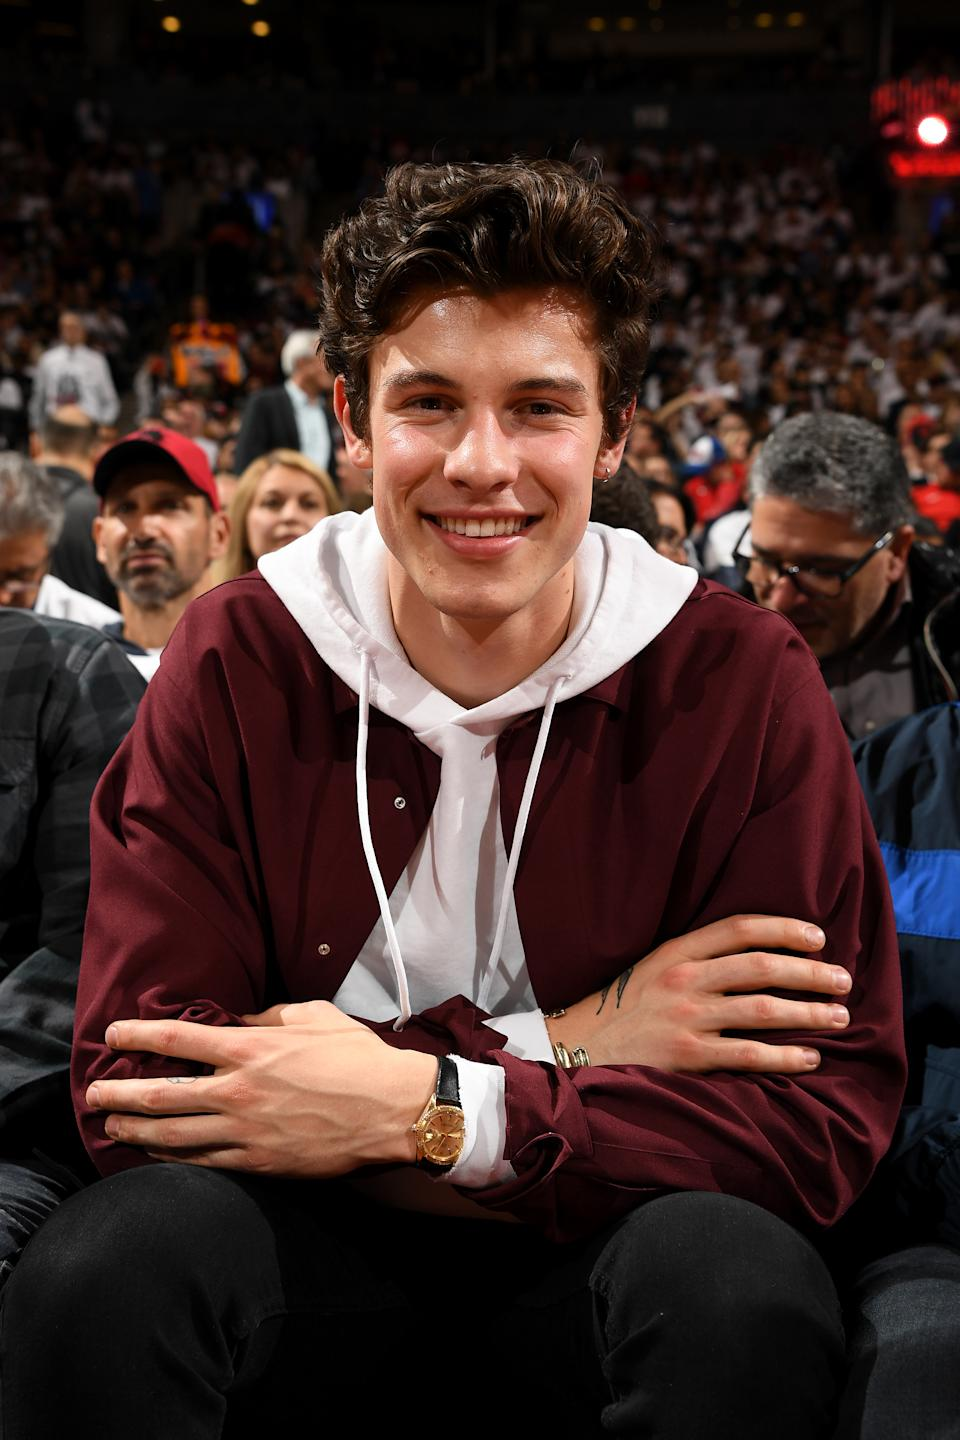 Singer, Shawn Mendes smiles at the game between the Philadelphia 76ers and Toronto Raptors during Game One of the Eastern Conference Semi-Finals of the 2019 NBA Playoffs on April 27, 2019 at the Scotiabank Arena in Toronto, Ontario, Canada. (Photo by Ron Turenne/NBAE via Getty Images)